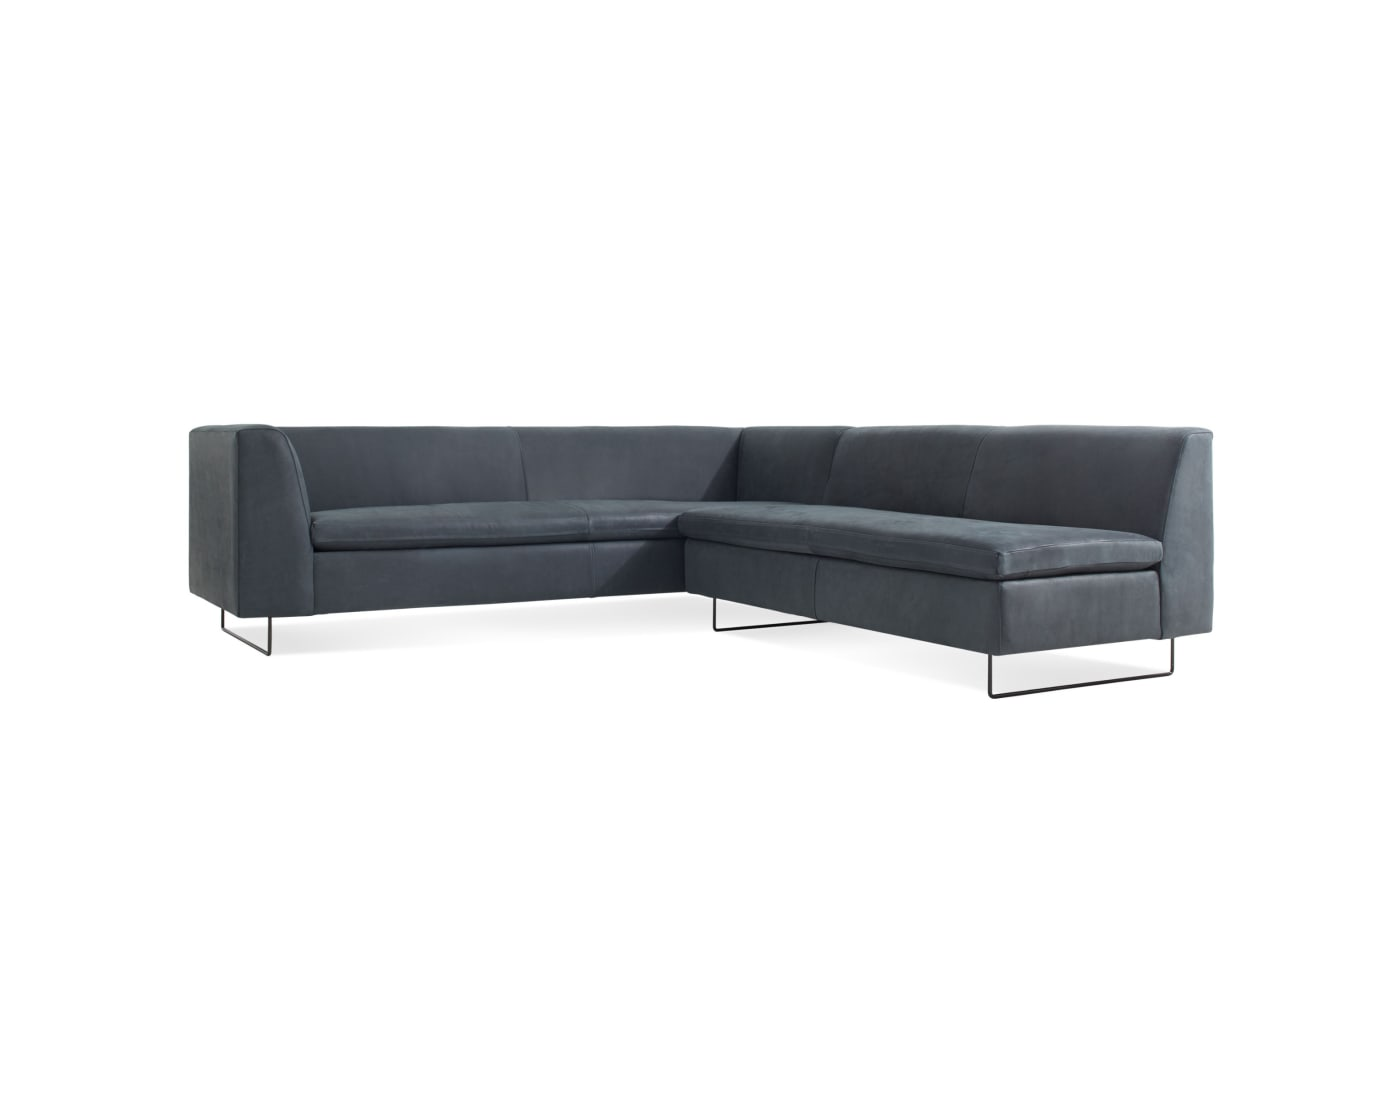 Bonnie & Clyde Sectional Sofa